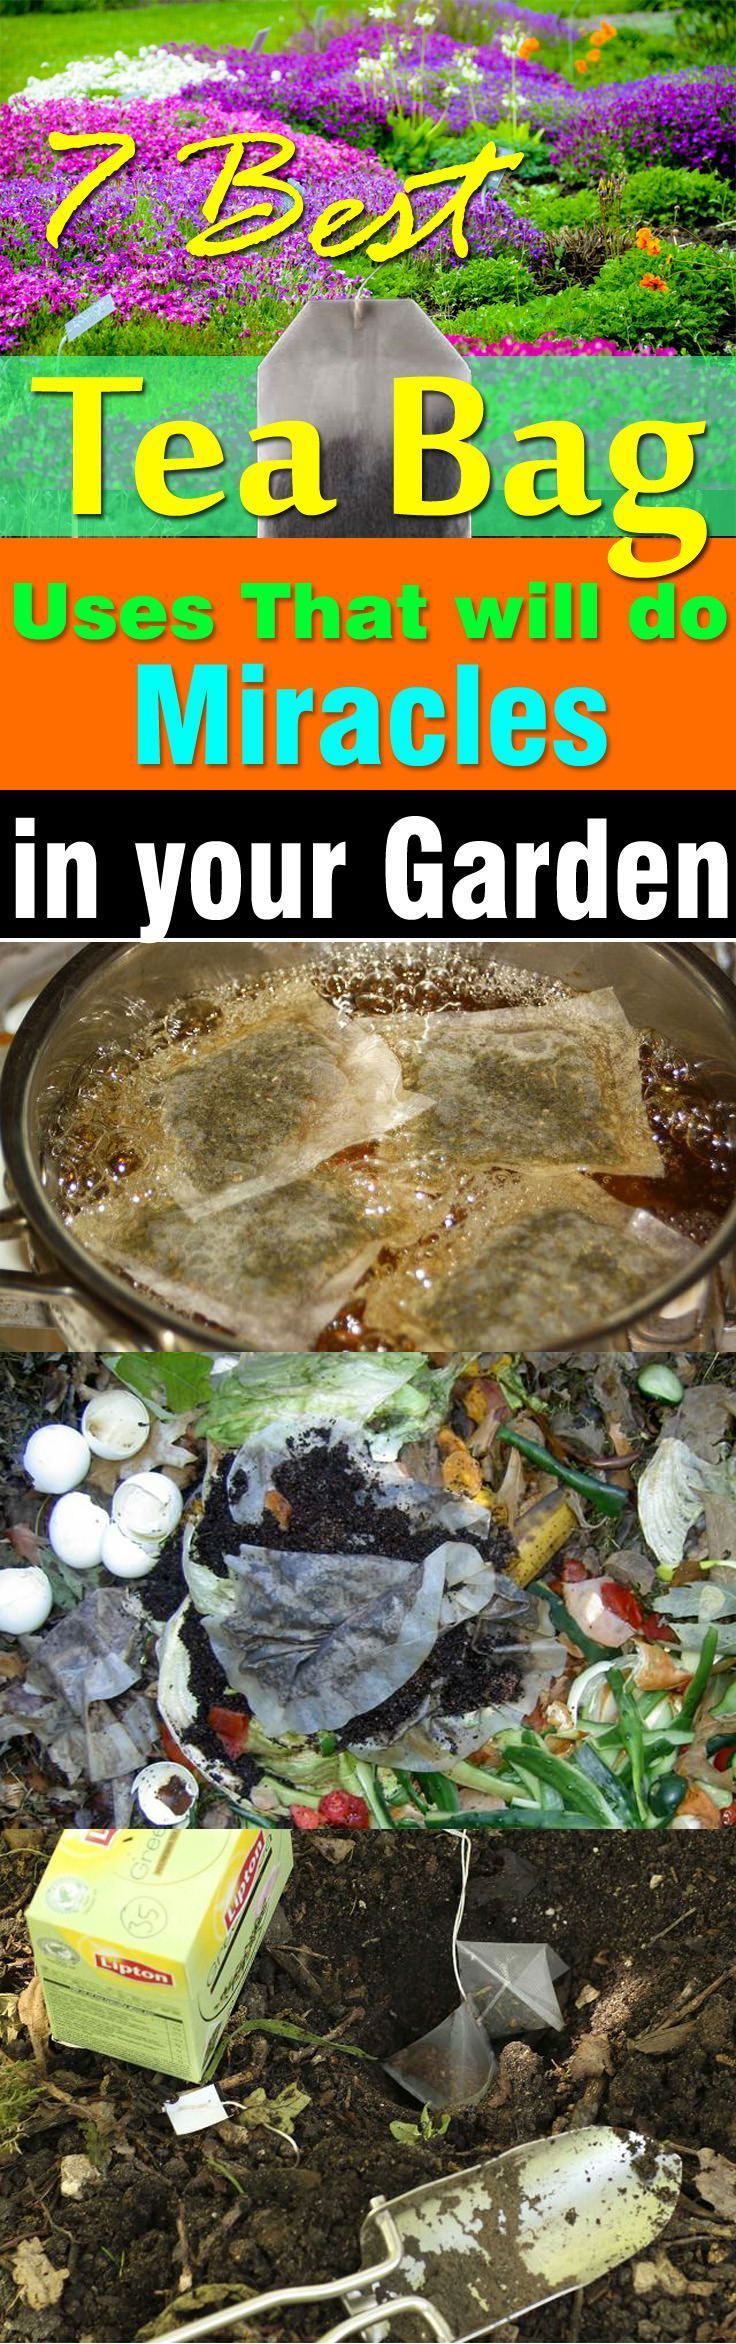 17 best ideas about brew tea tea tea time and hot 7 best tea bag uses that will do miracles in your garden